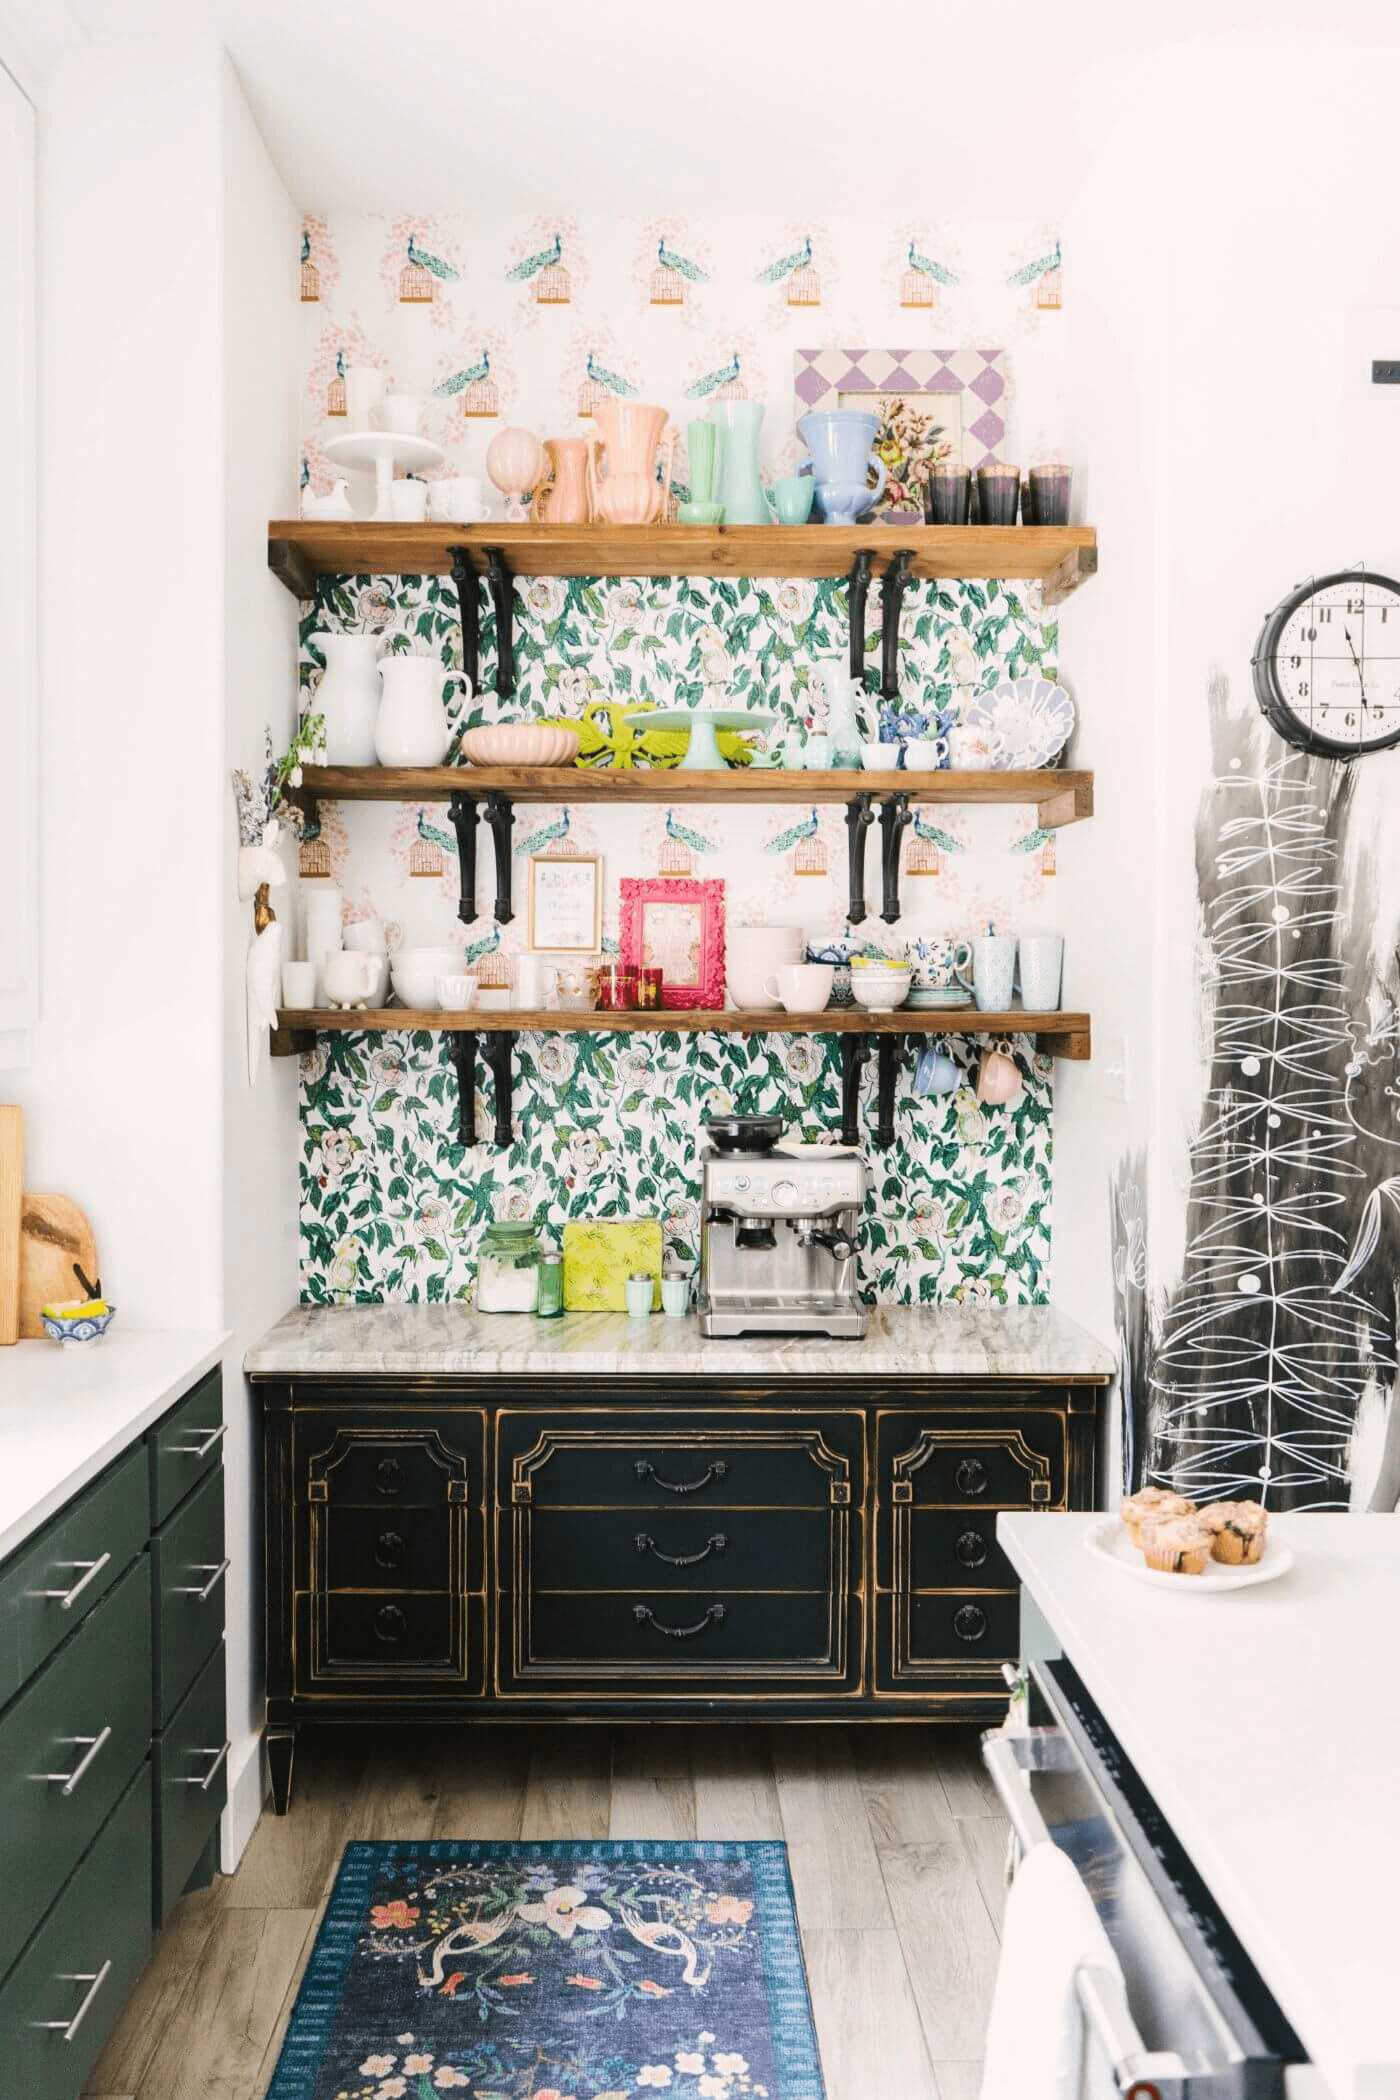 this-is-a-farmhouse-kitchen-with-a-vintage-and-rustic-cabinets-and-marble-top